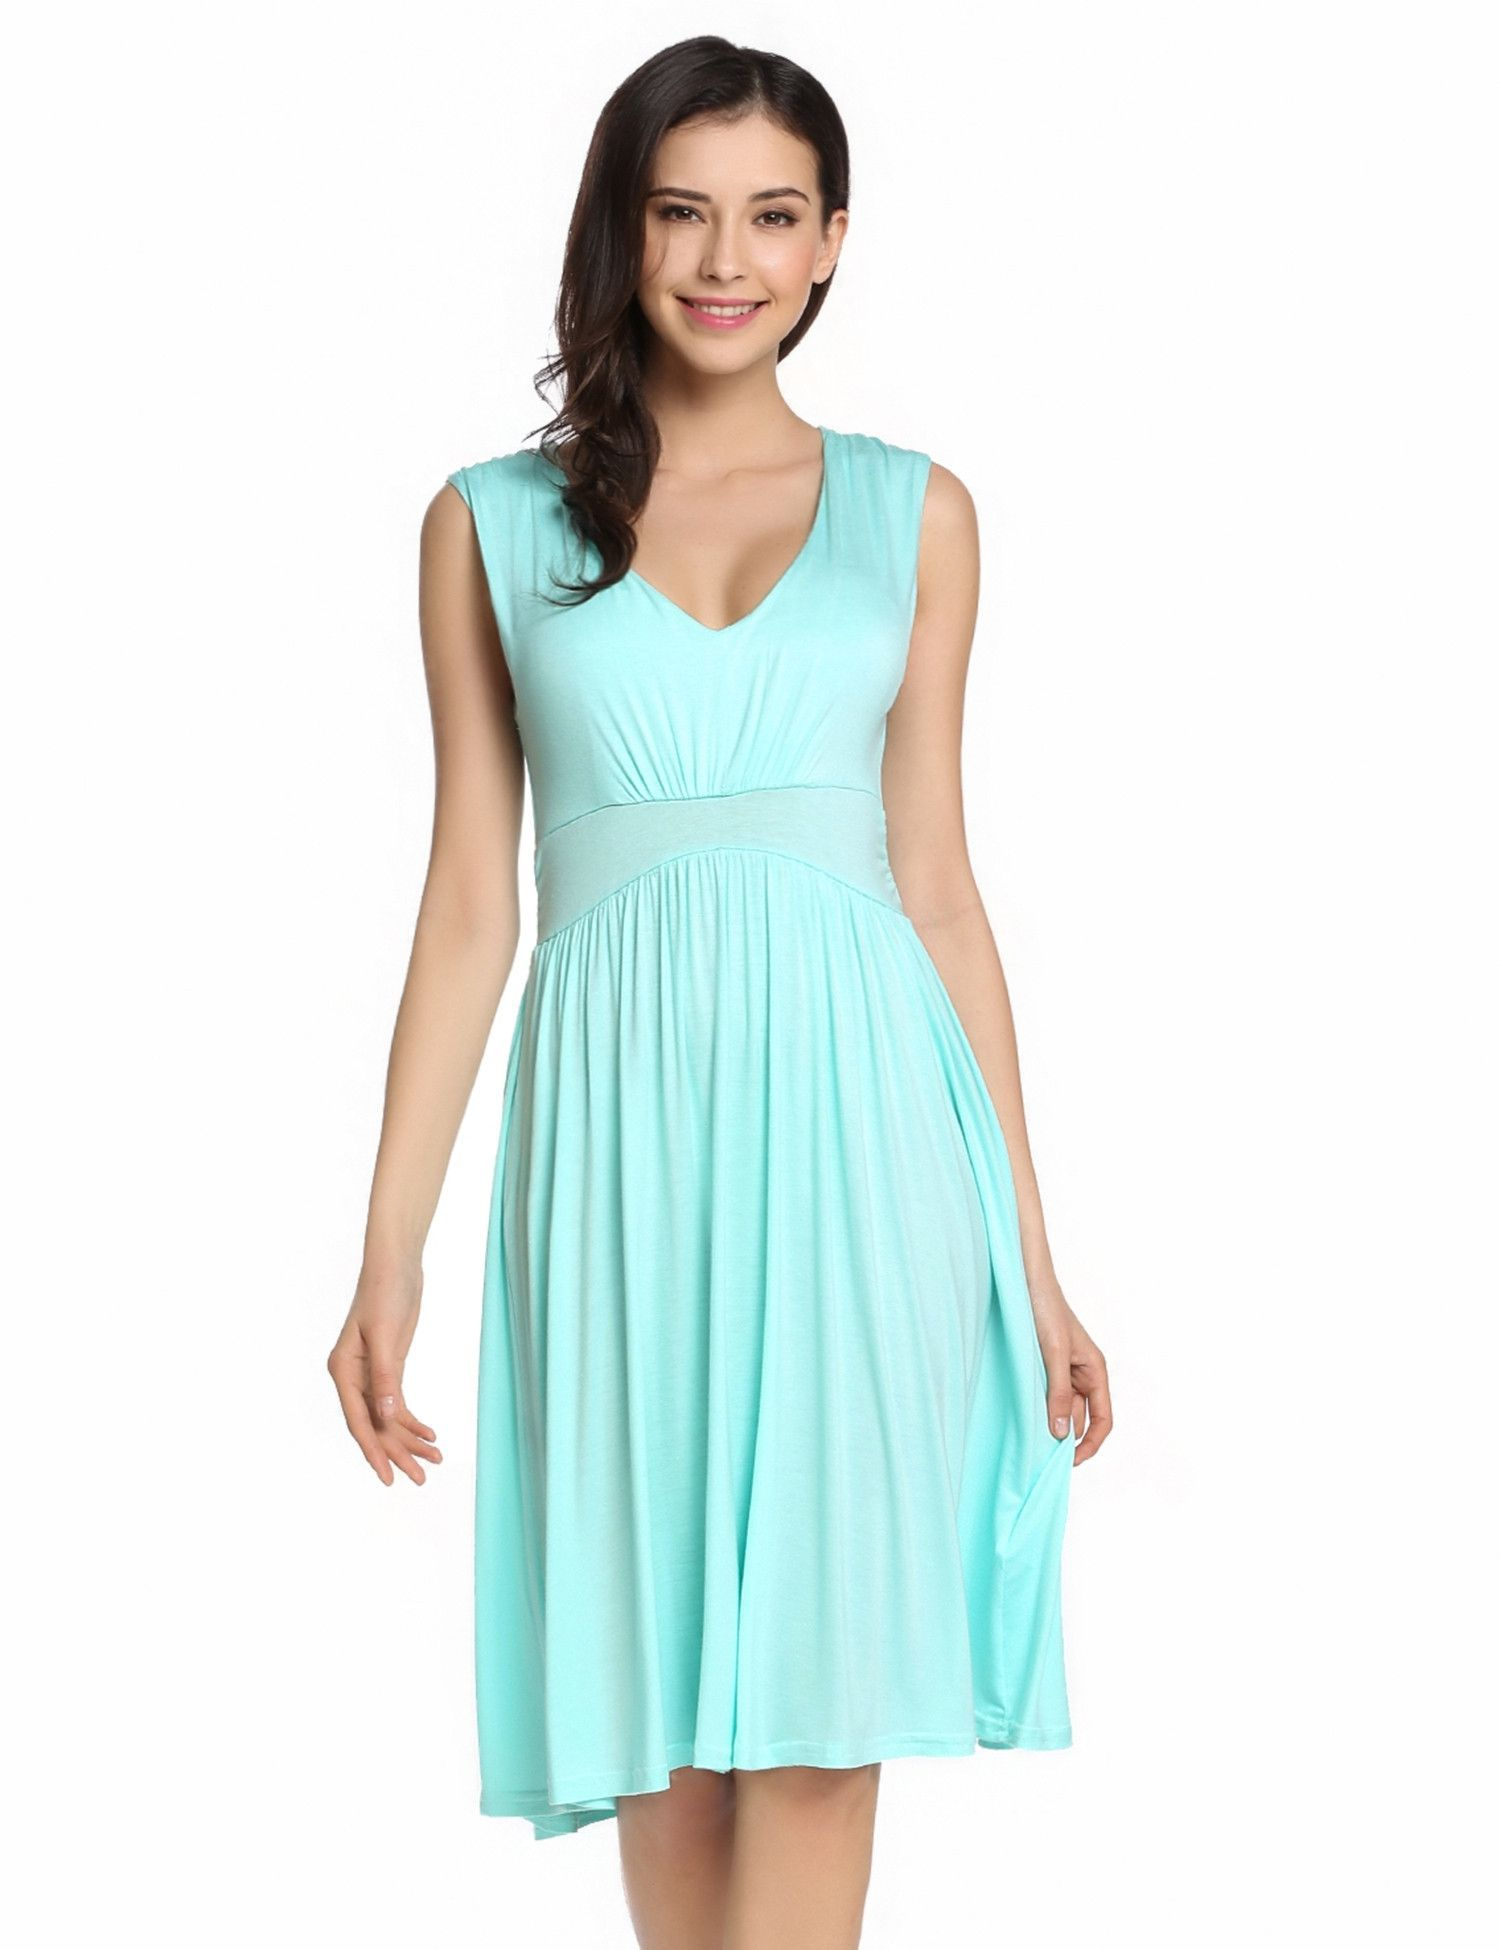 Light blue V-Neck Sleeveless Solid Fit and Flare Casual Dress ...